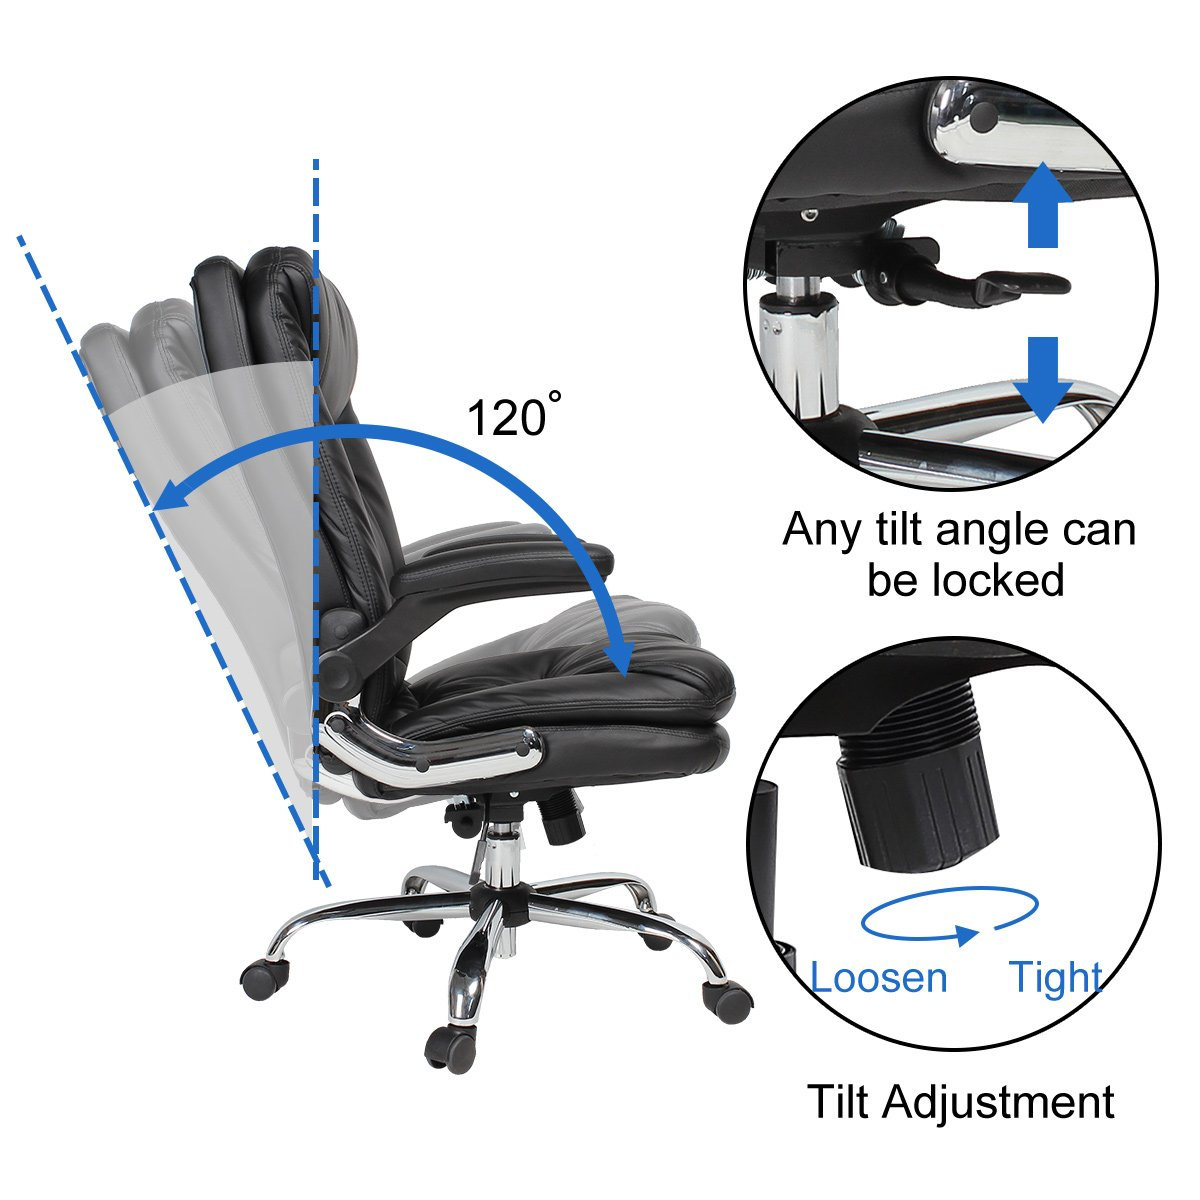 YAMASORO Ergonomic Home Office Chair with Flip-Up Arms and Comfy Headrest PU Leather High-Back Computer Desk Chair Big and Tall Capacity 330lbs Black by YAMASORO (Image #7)